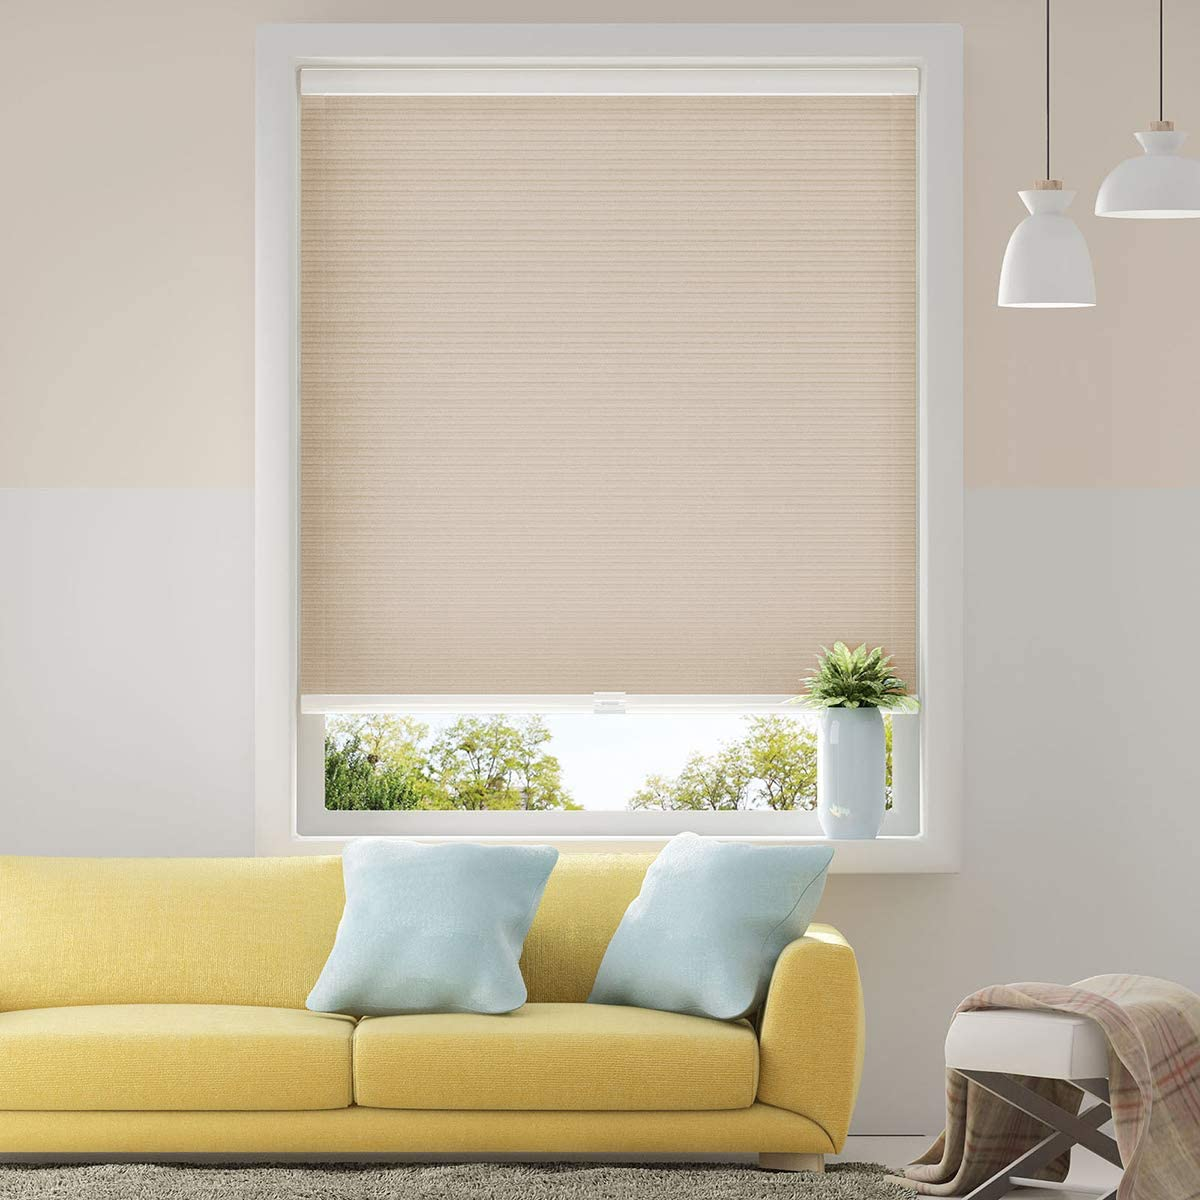 Cellular Blinds Cordless Shades for Windows Single Cell Shade - Provide Privacy and Filters Light - 31 x 64 inch, Ivory Beige(Light Filtering)